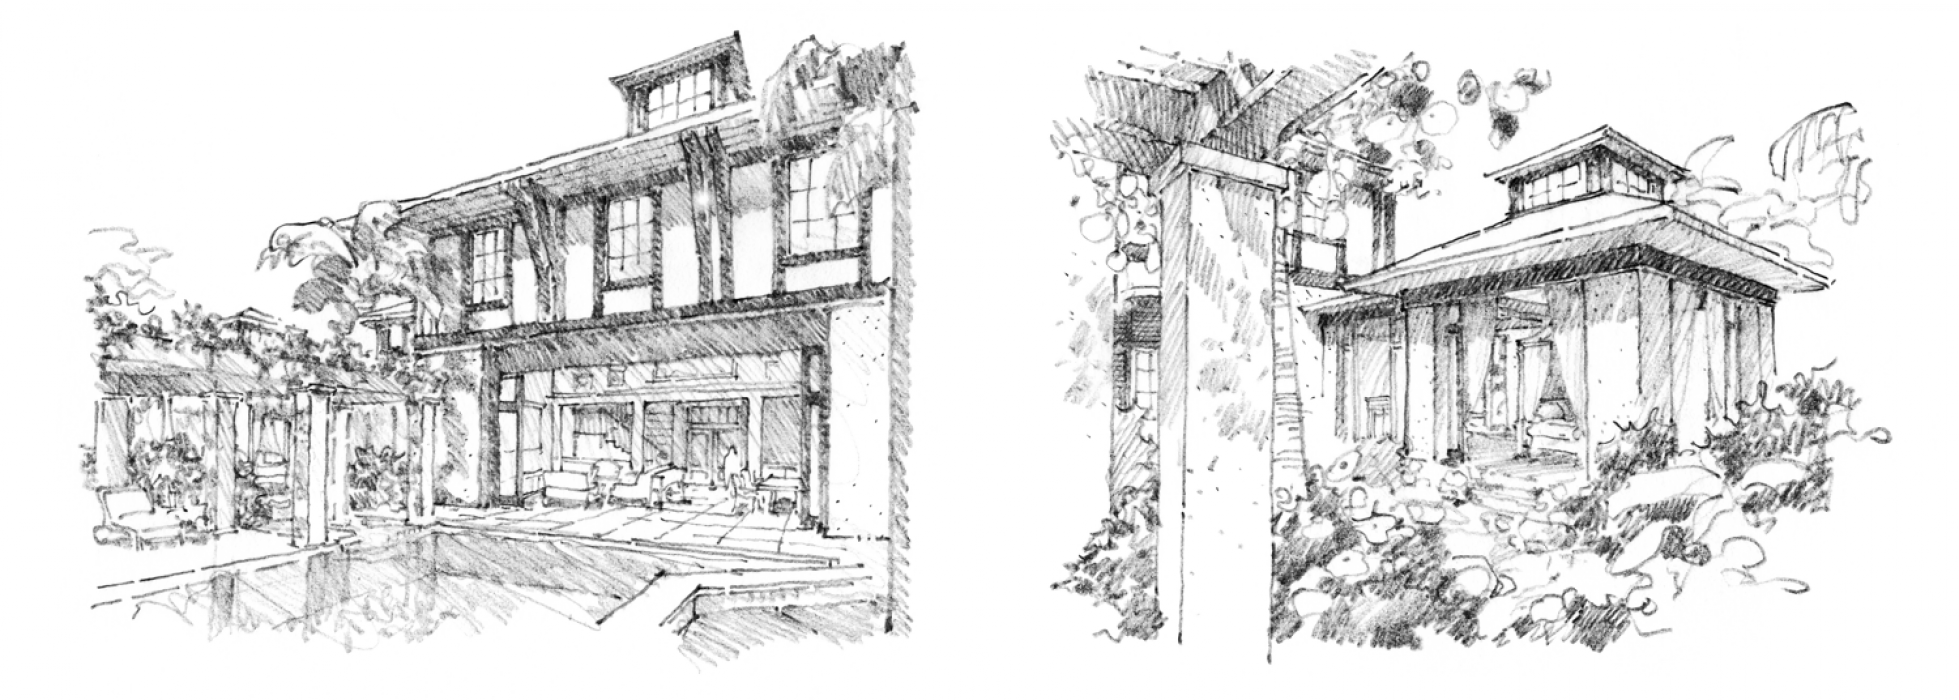 Historical concepts communities resorts. Old drawing architectural image transparent